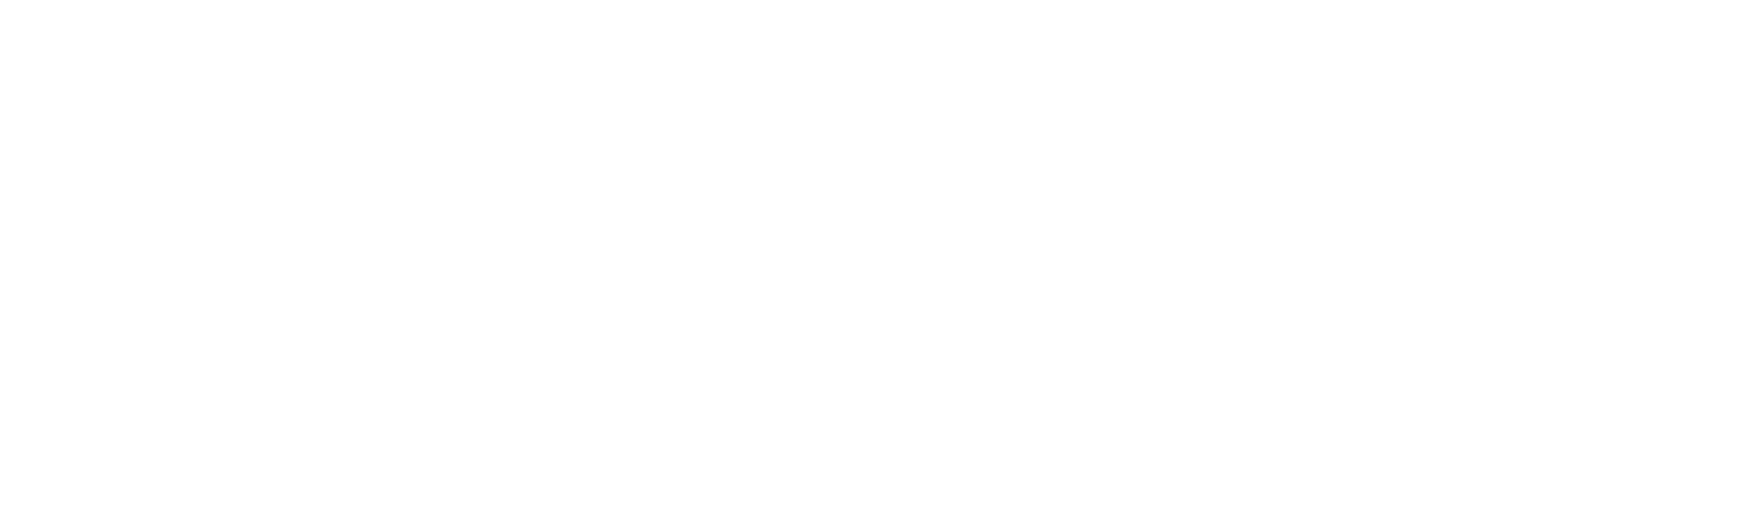 Photobooth Supply Co  Support Page